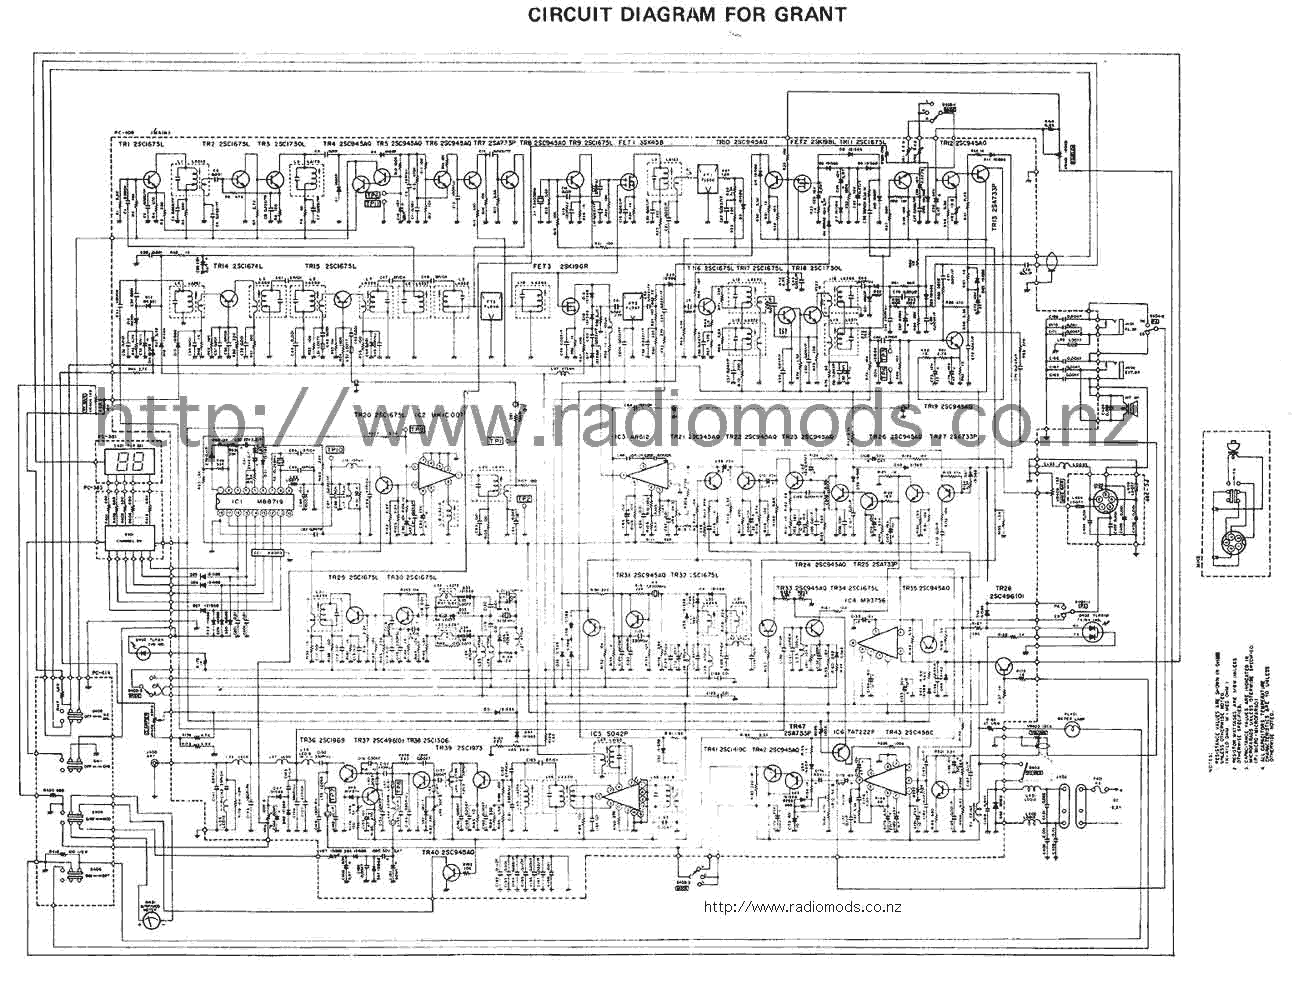 hight resolution of go to the uniden president grant pc409 circuit diagram page